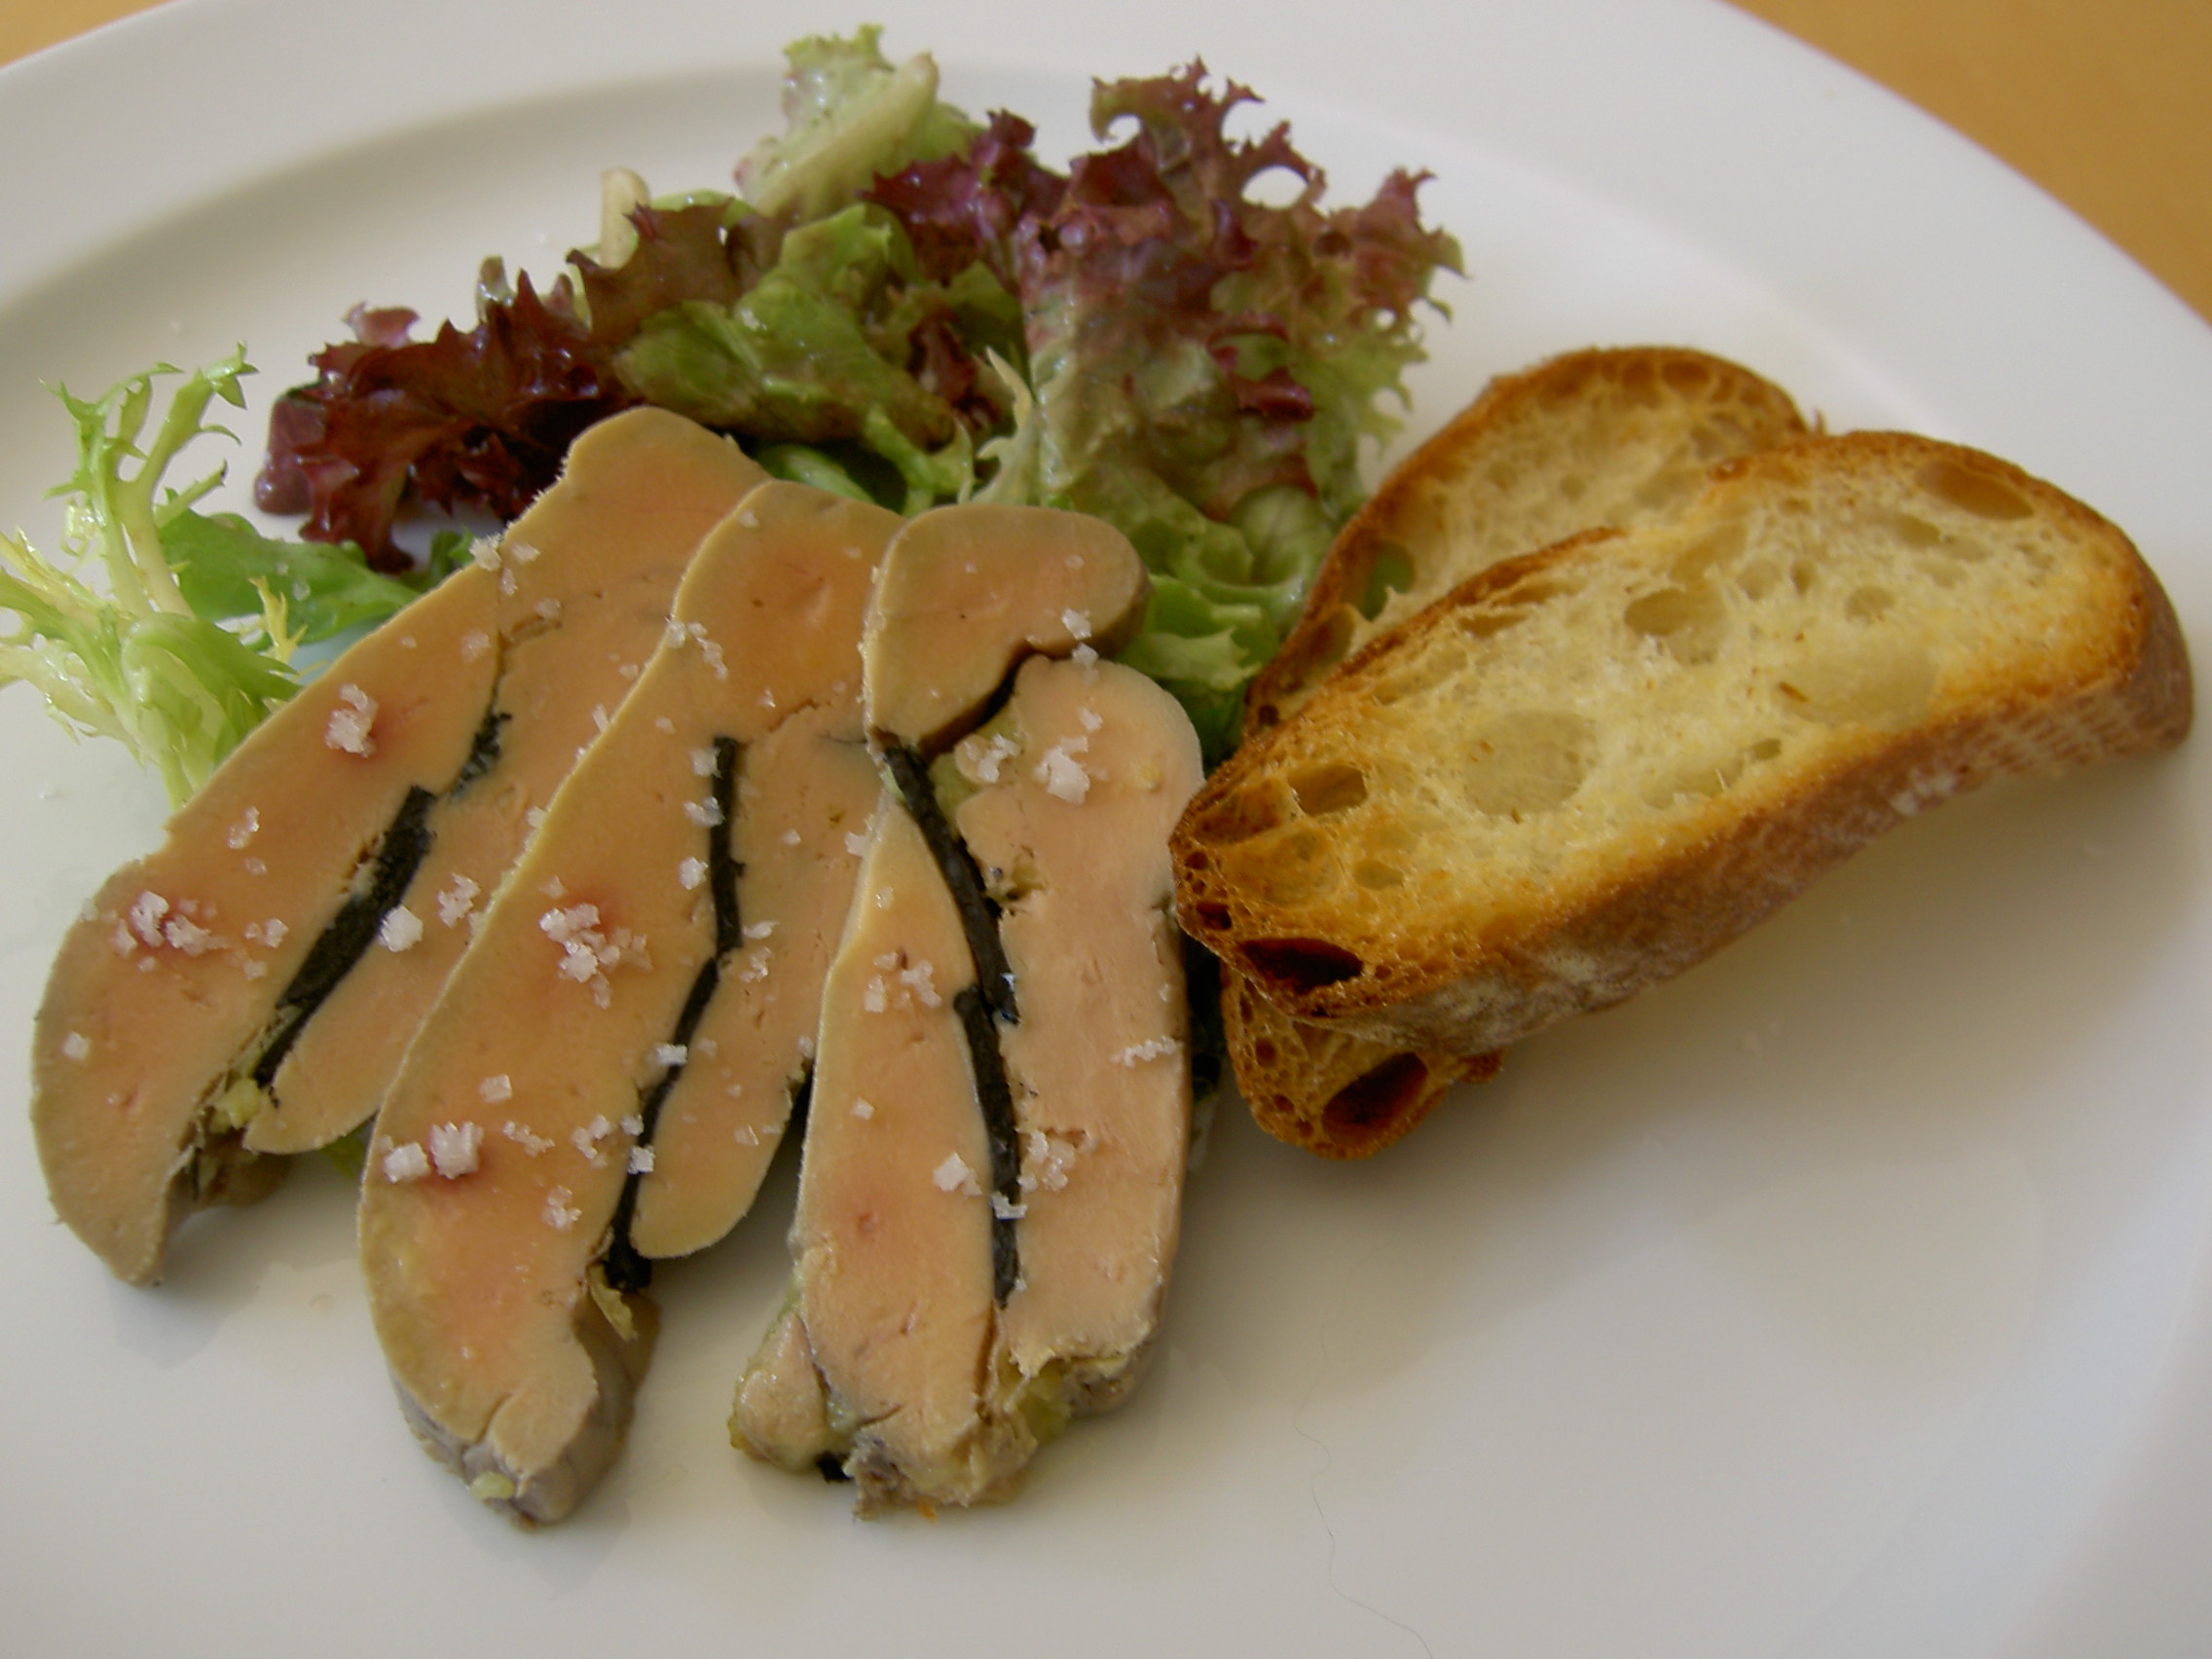 Foie Gras Terrine Foie Gras Recipes Terrine Of Foie Gras With Black Truffles